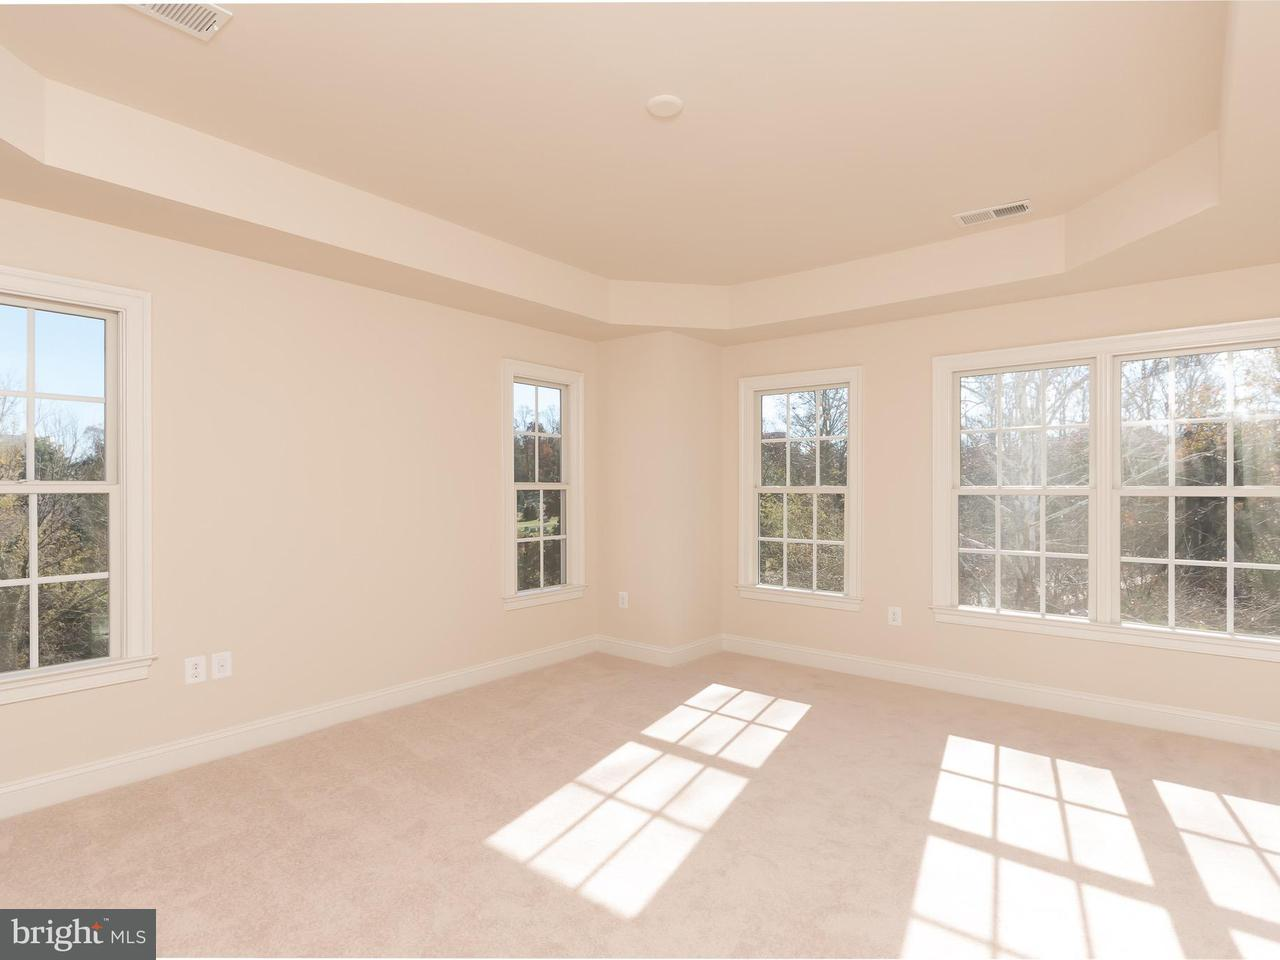 Additional photo for property listing at 10663 Yorktown Court 10663 Yorktown Court Fairfax, Virginia 22030 Estados Unidos